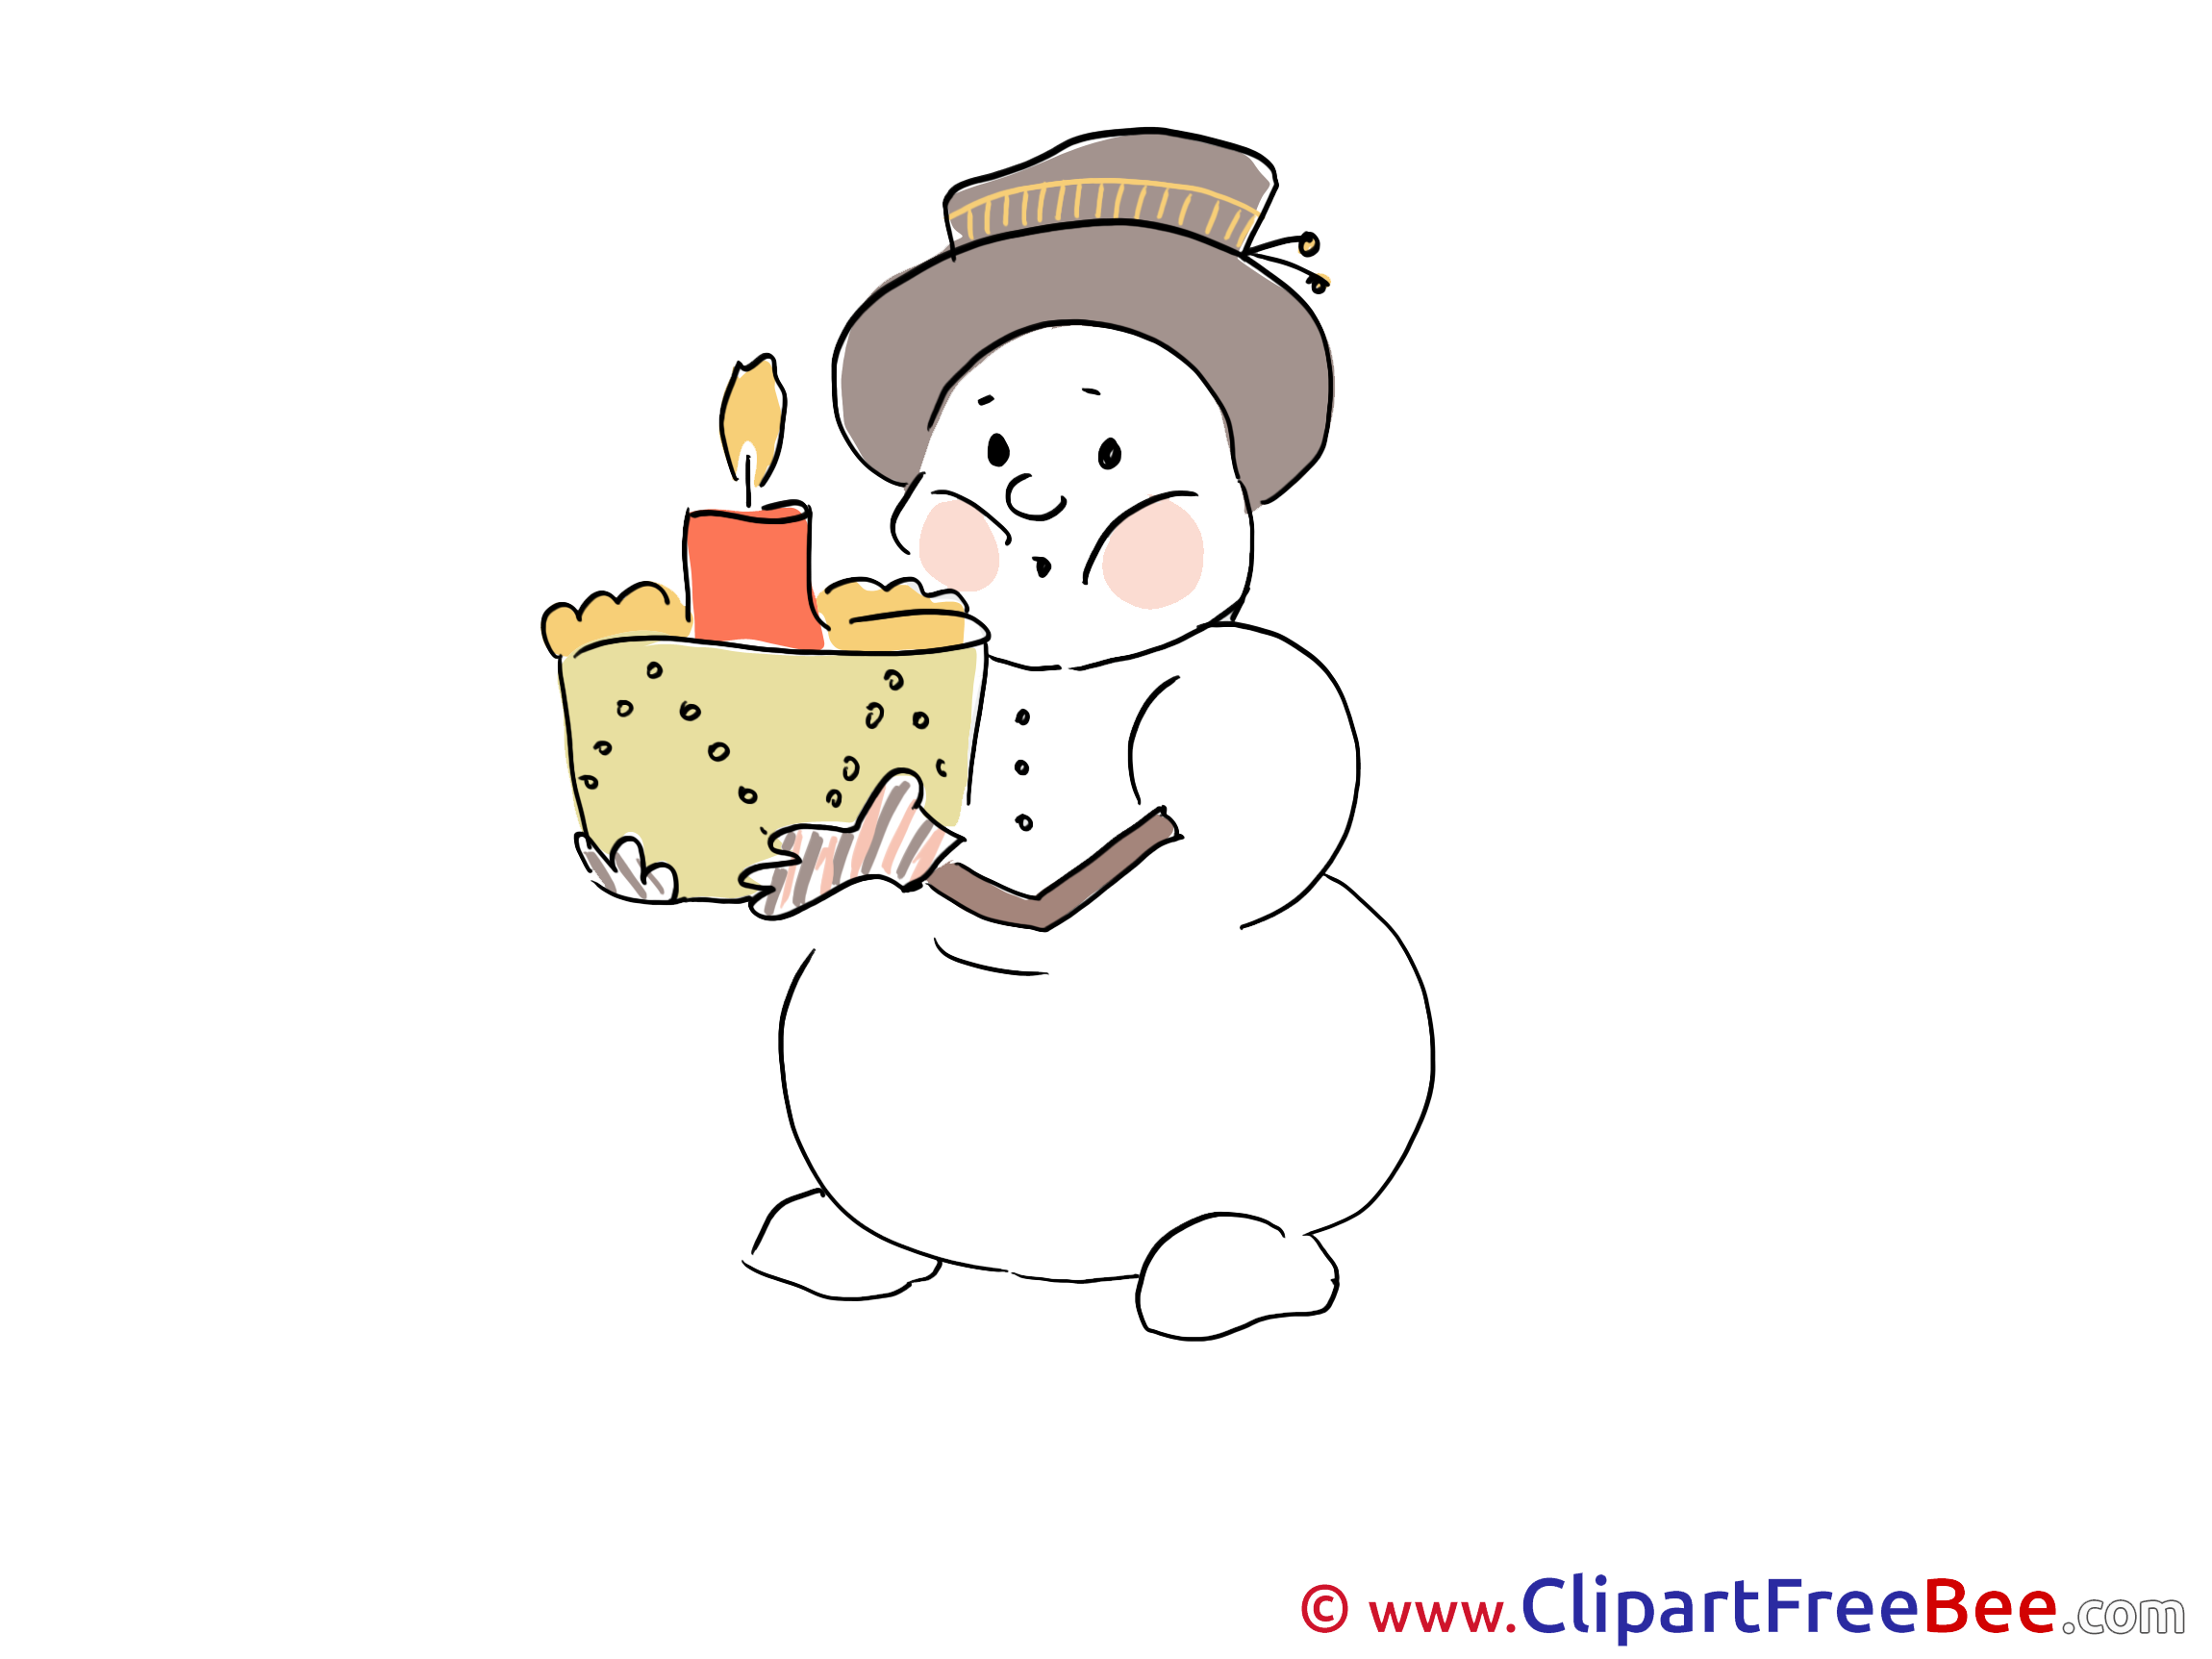 Cake Snowman printable Winter Images